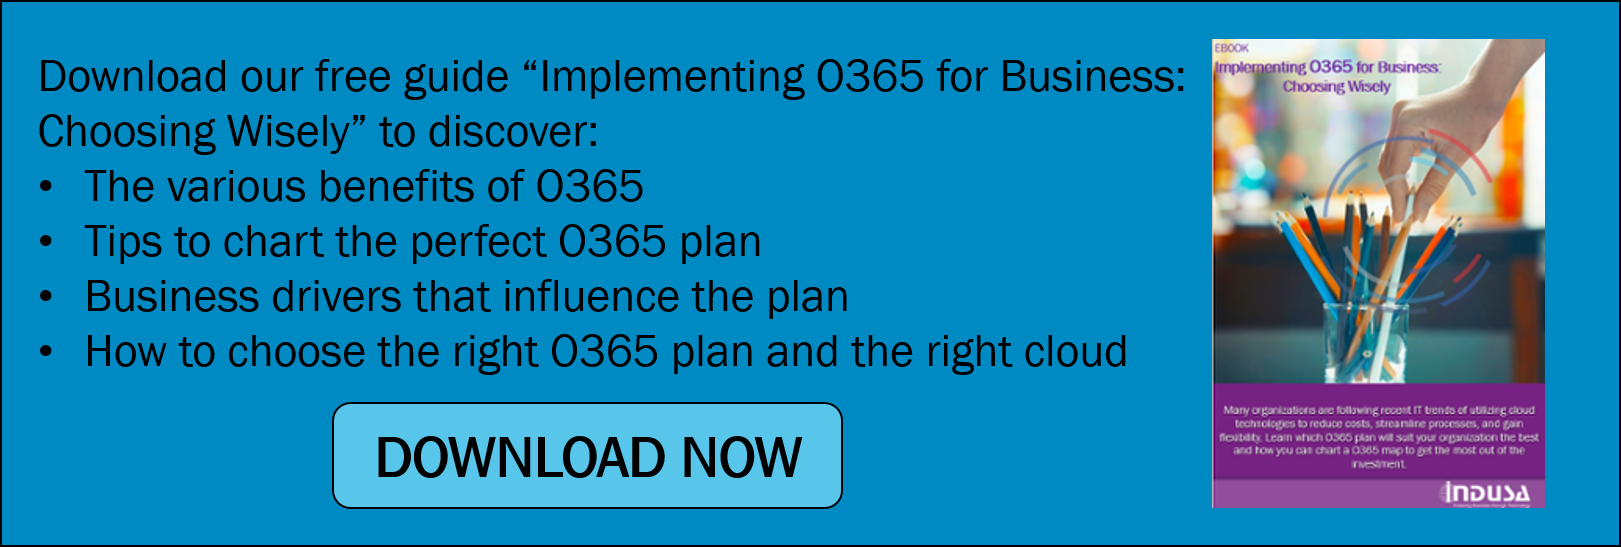 Implementing O365 For Business